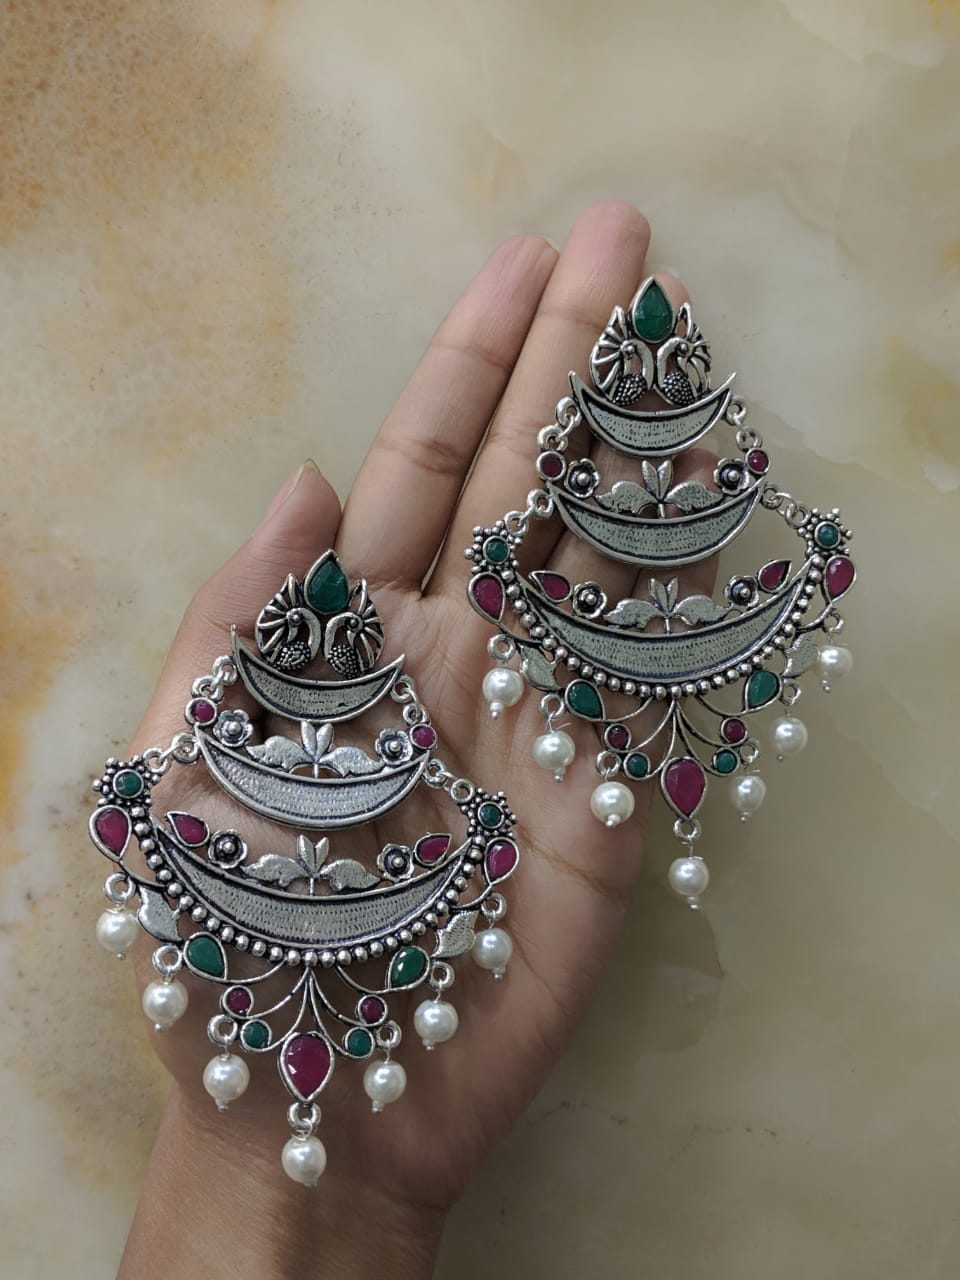 ca1c63109 Digital Jhumki Earrings for Women Designer Oxidised Silver Earring Afghani  Tribal Bohemian German Silver Stylish Party